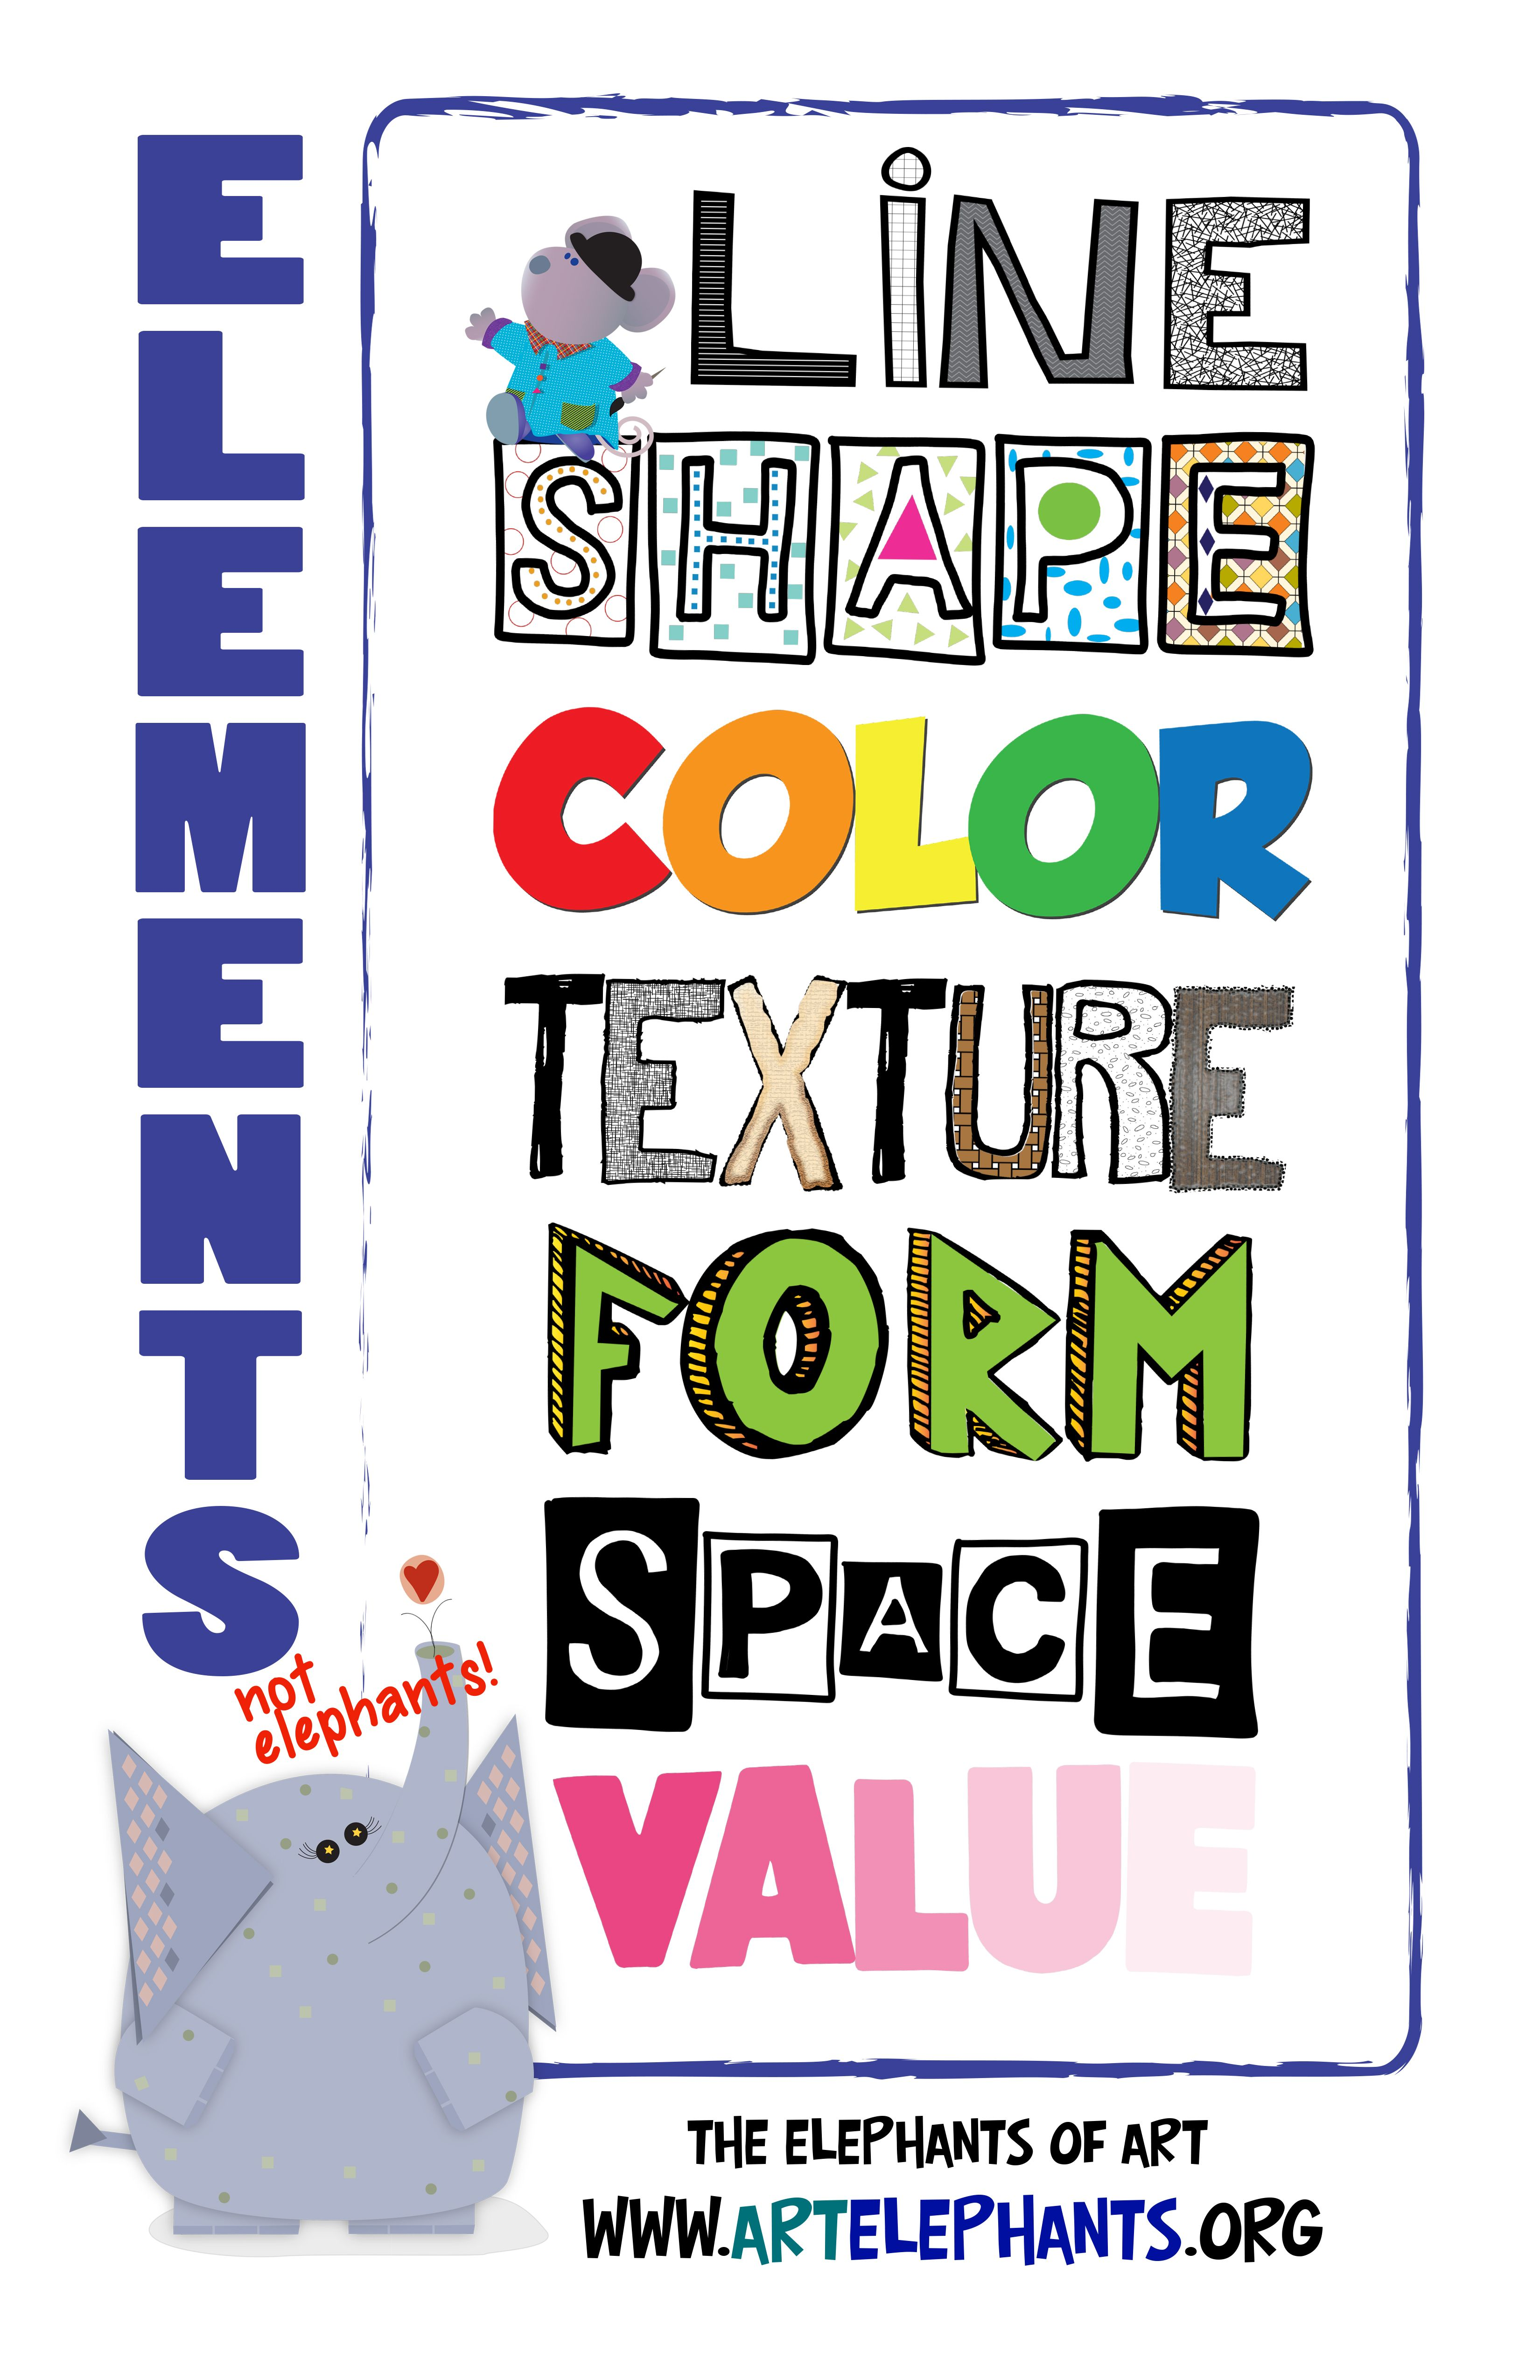 FREE DOWNLOADABLE POSTER! 11x17 The Elements of Art along with The Elephants of Art. www.artelephants.org